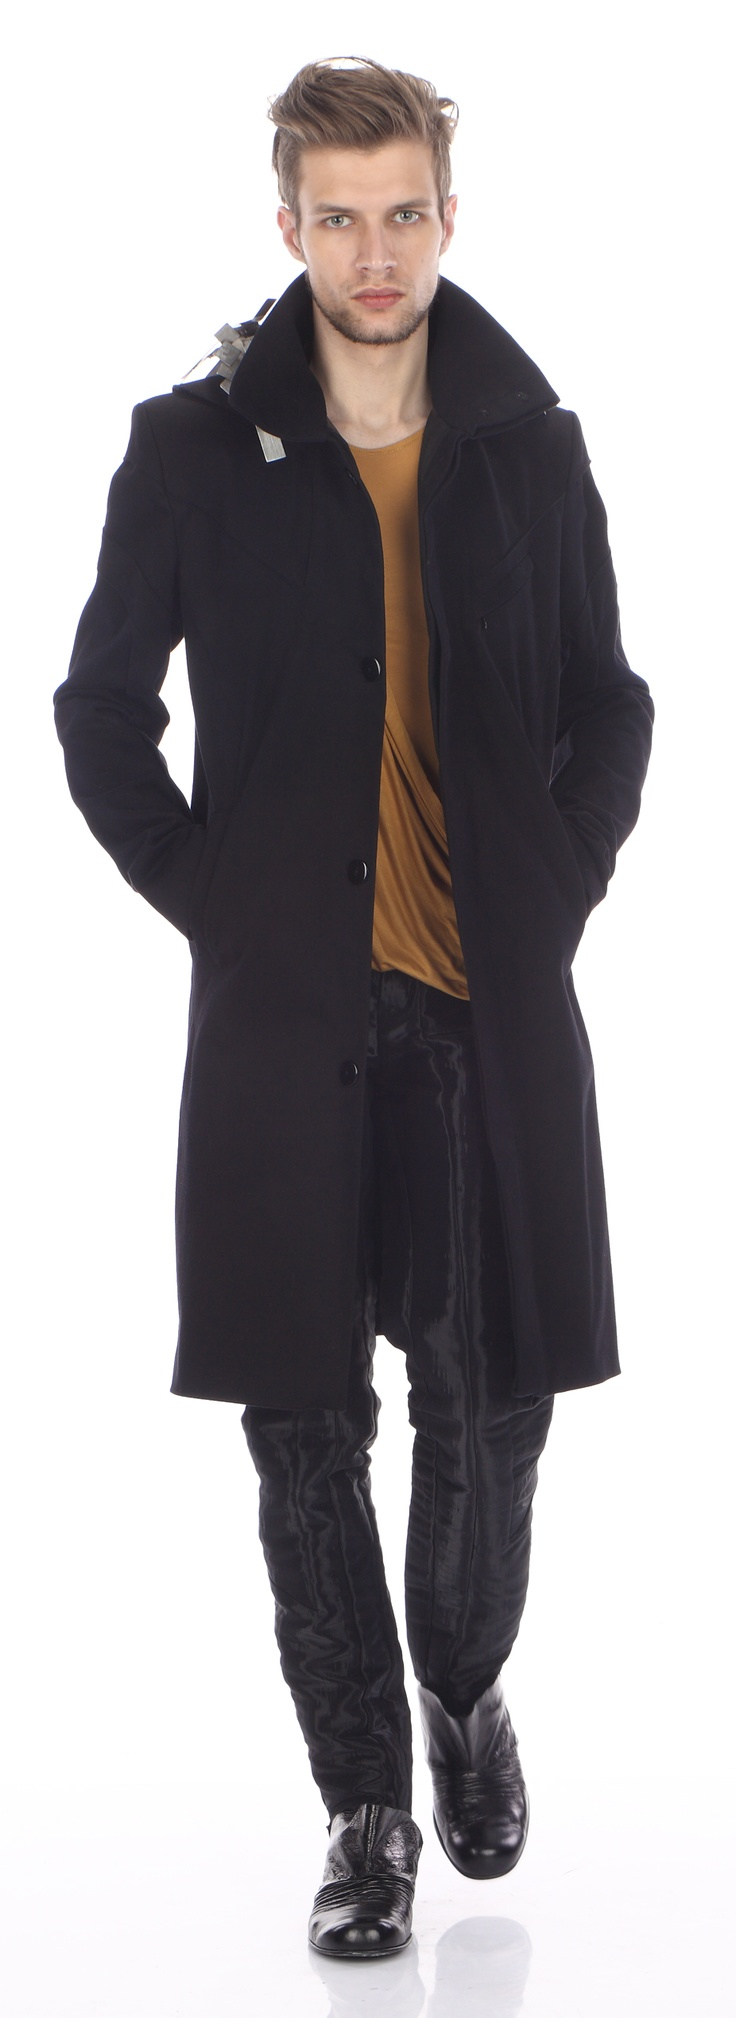 Coat ( cotton), top ( silk jersey), trousers (polyester), shoes ( leather)